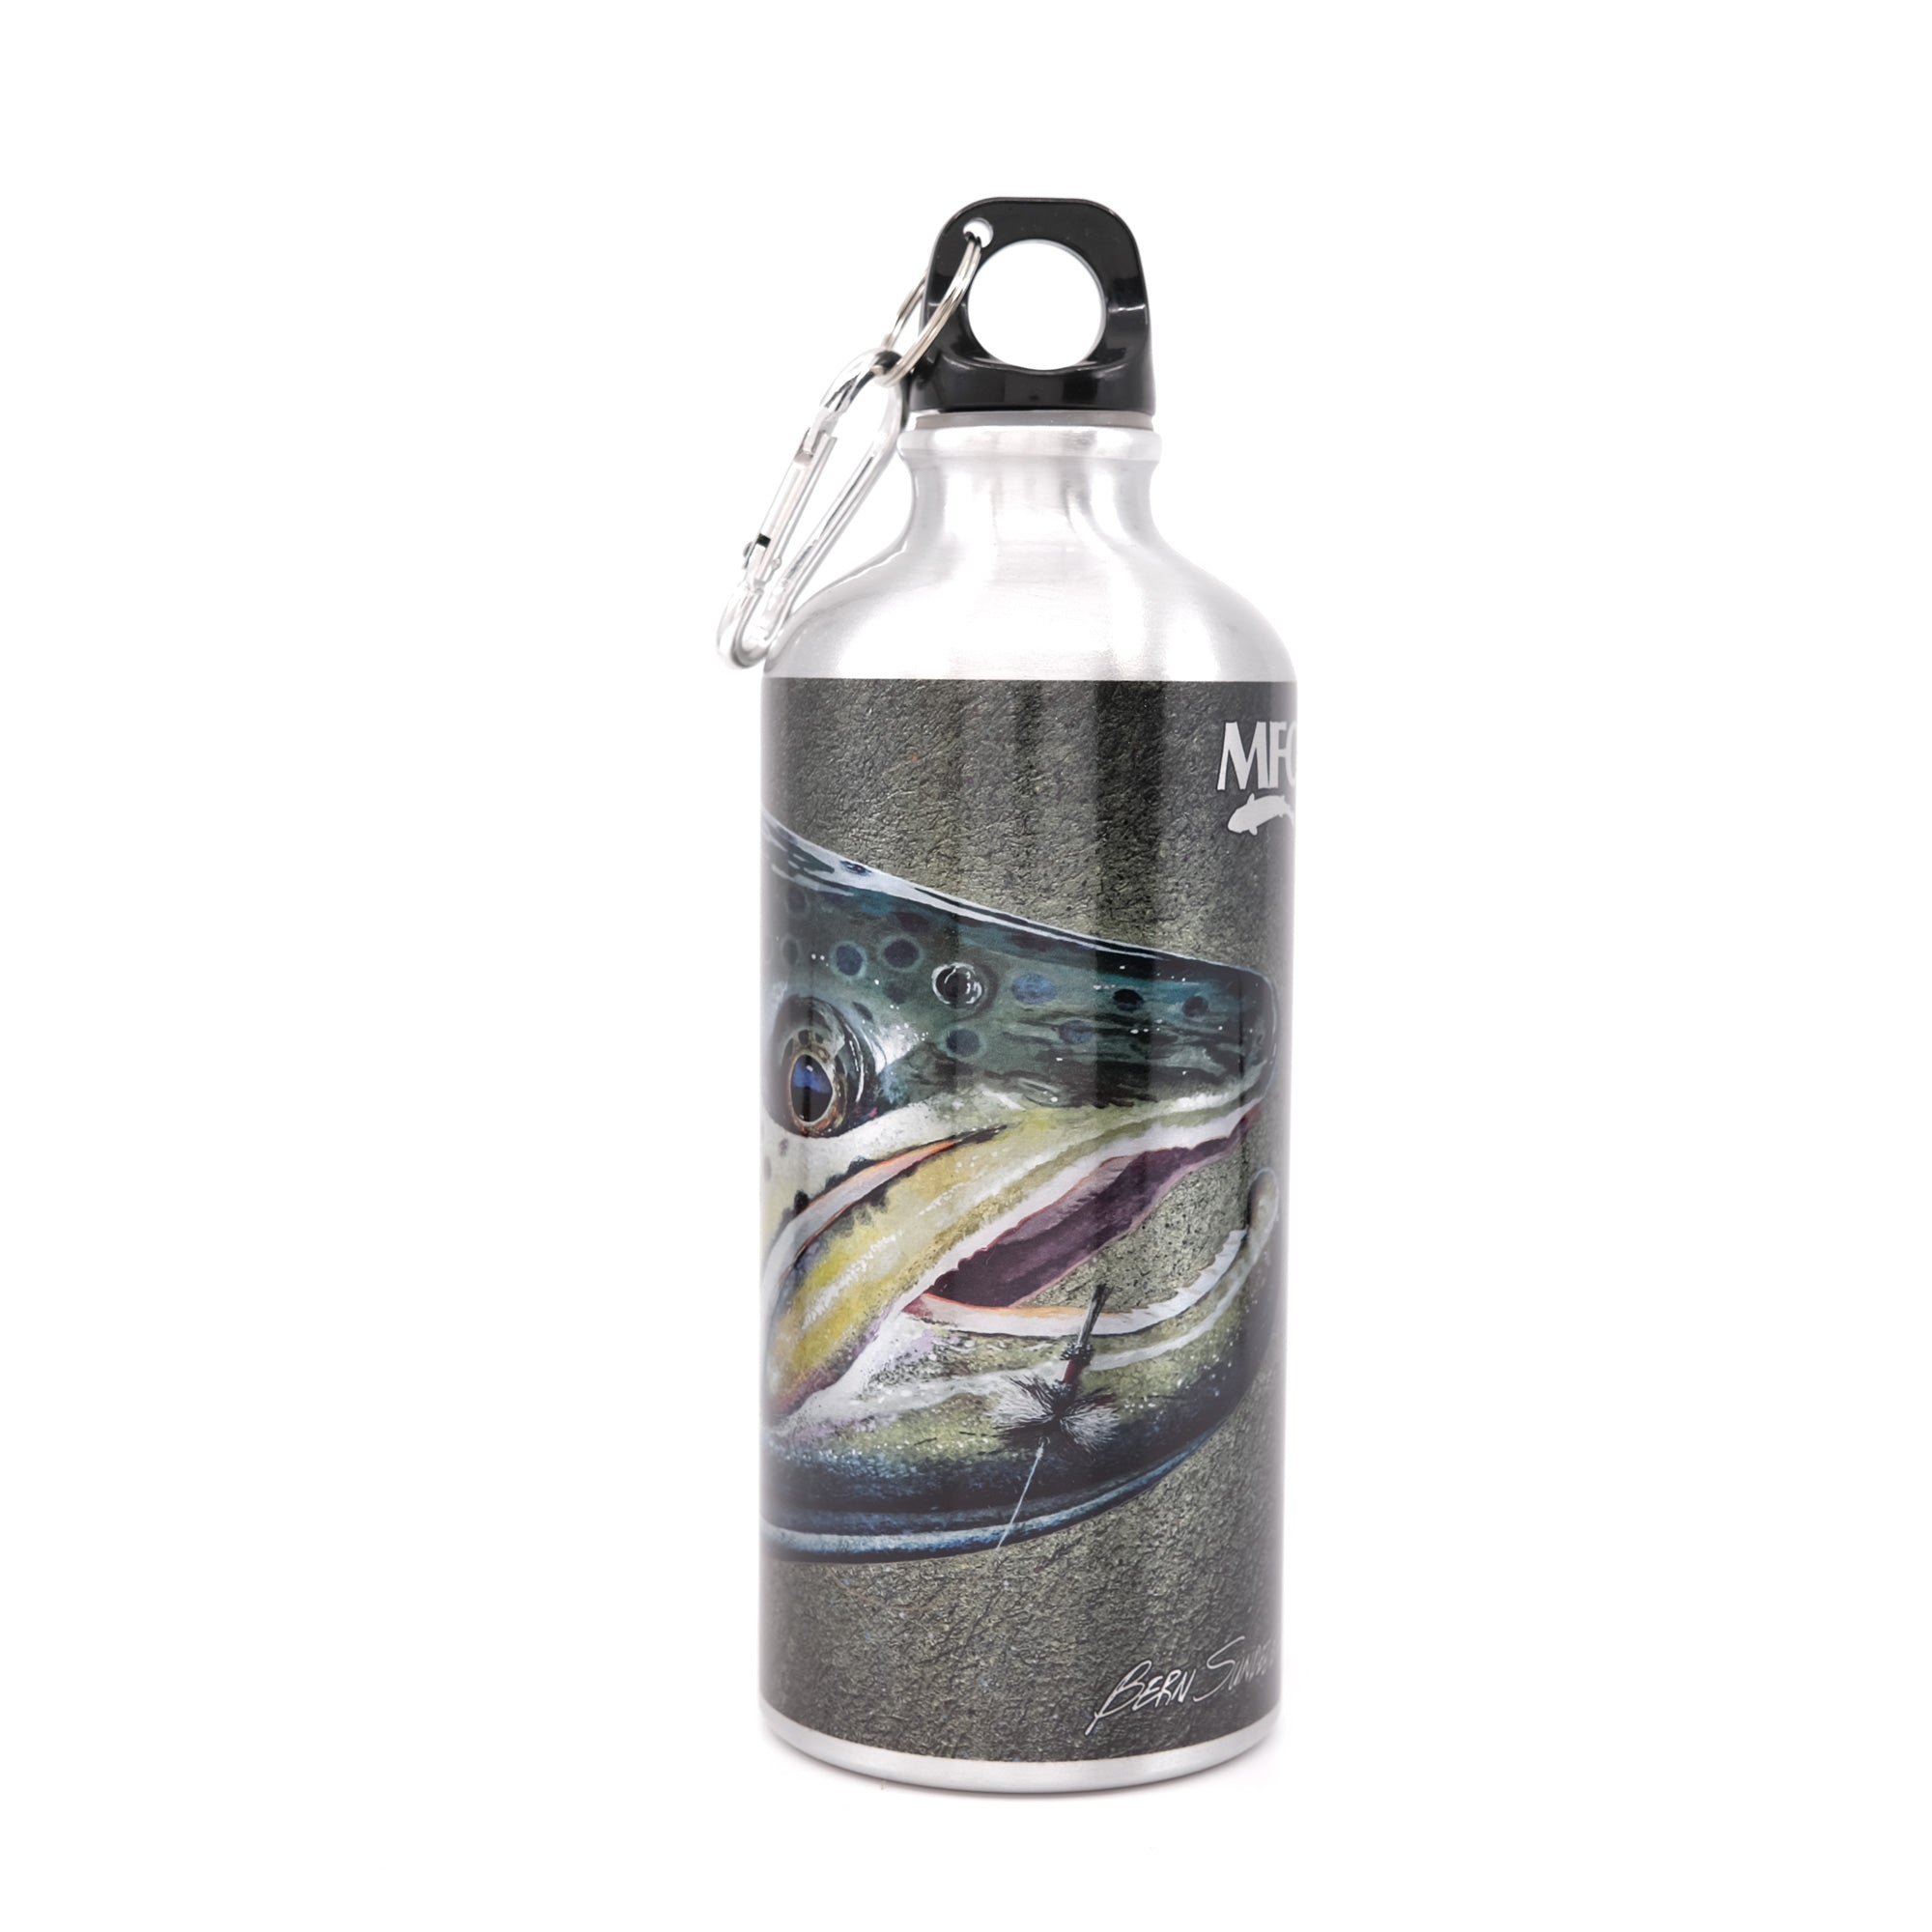 MFC Water Bottle - Sundell's Yellow Thunder